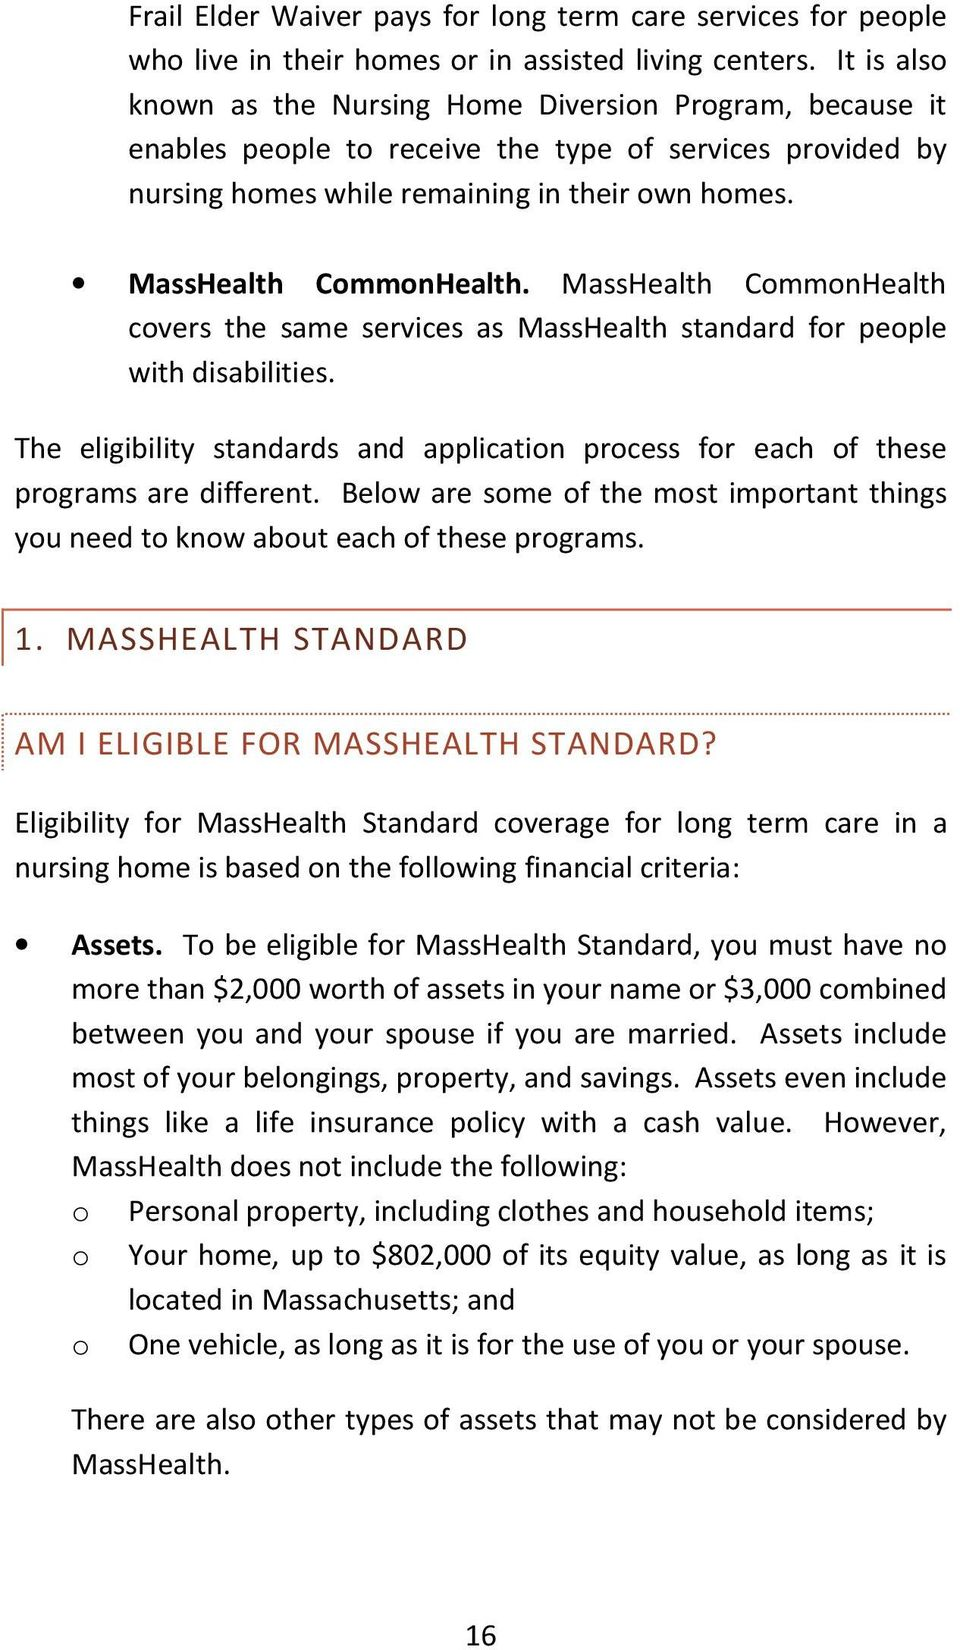 MassHealth CommonHealth covers the same services as MassHealth standard for people with disabilities. The eligibility standards and application process for each of these programs are different.